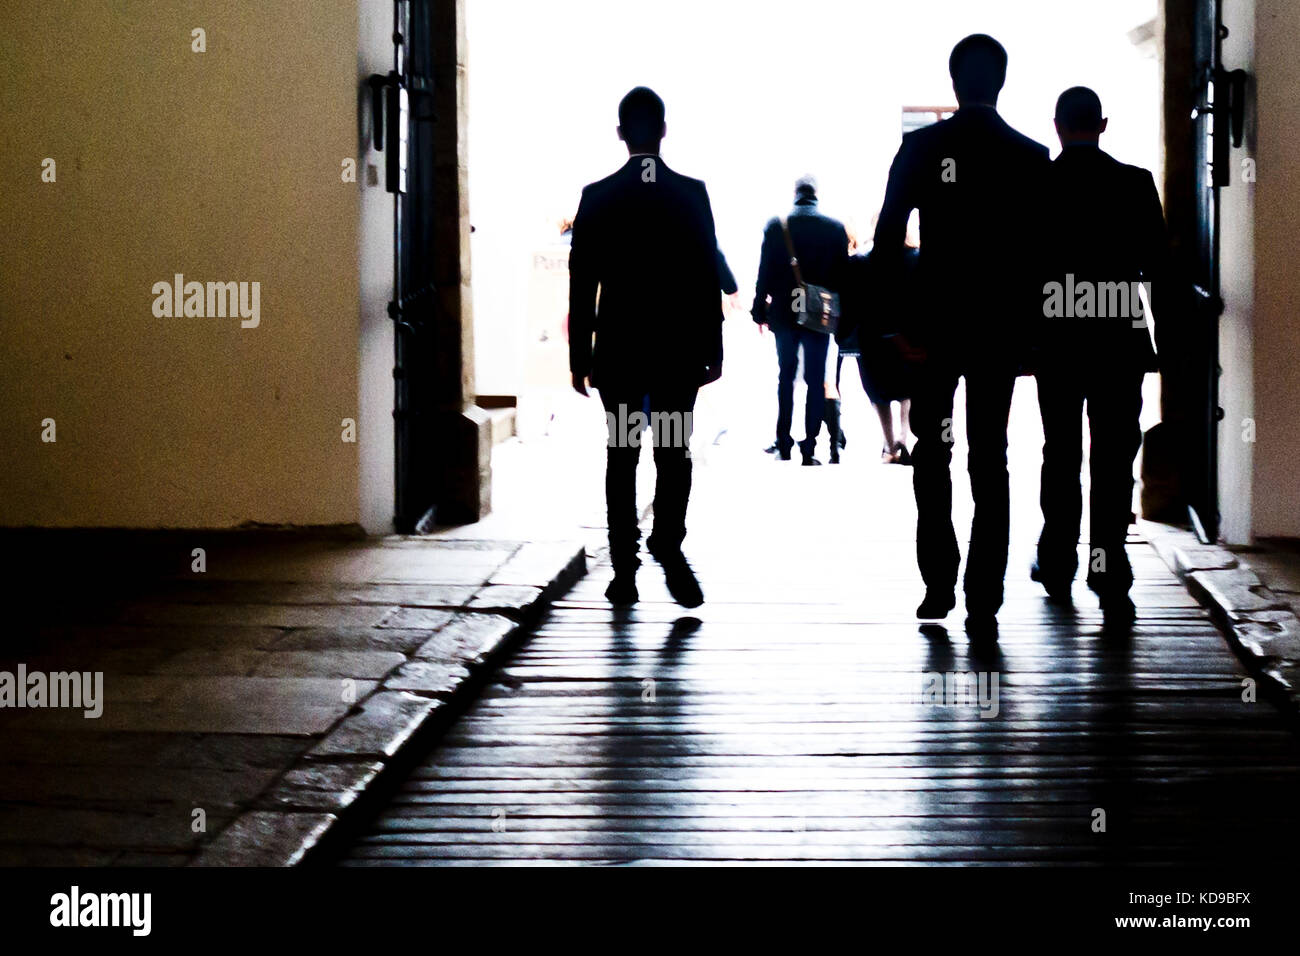 group of men in suits walking - Stock Image